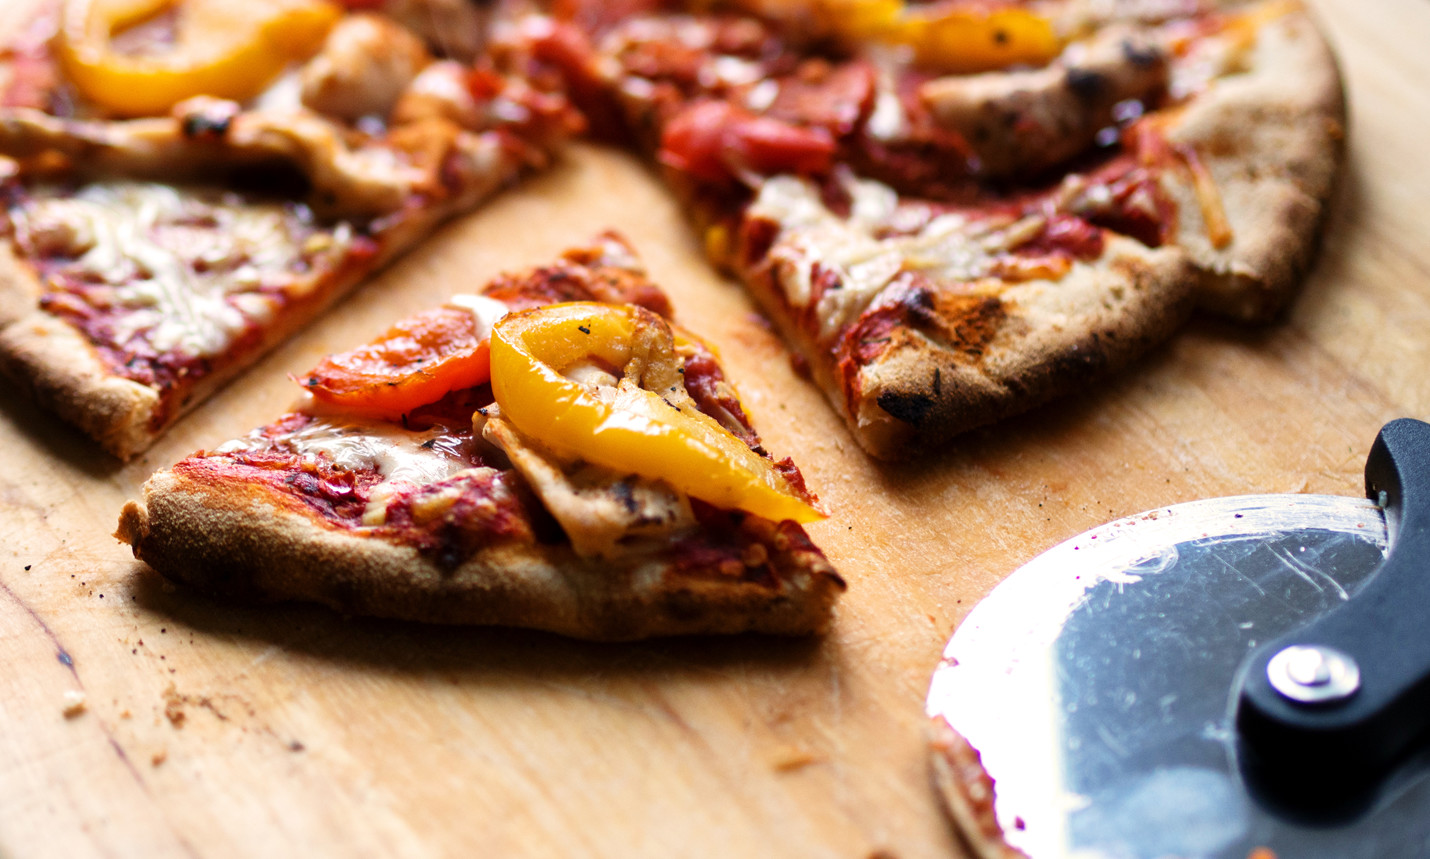 Eating junk food increases cancer risk pizza